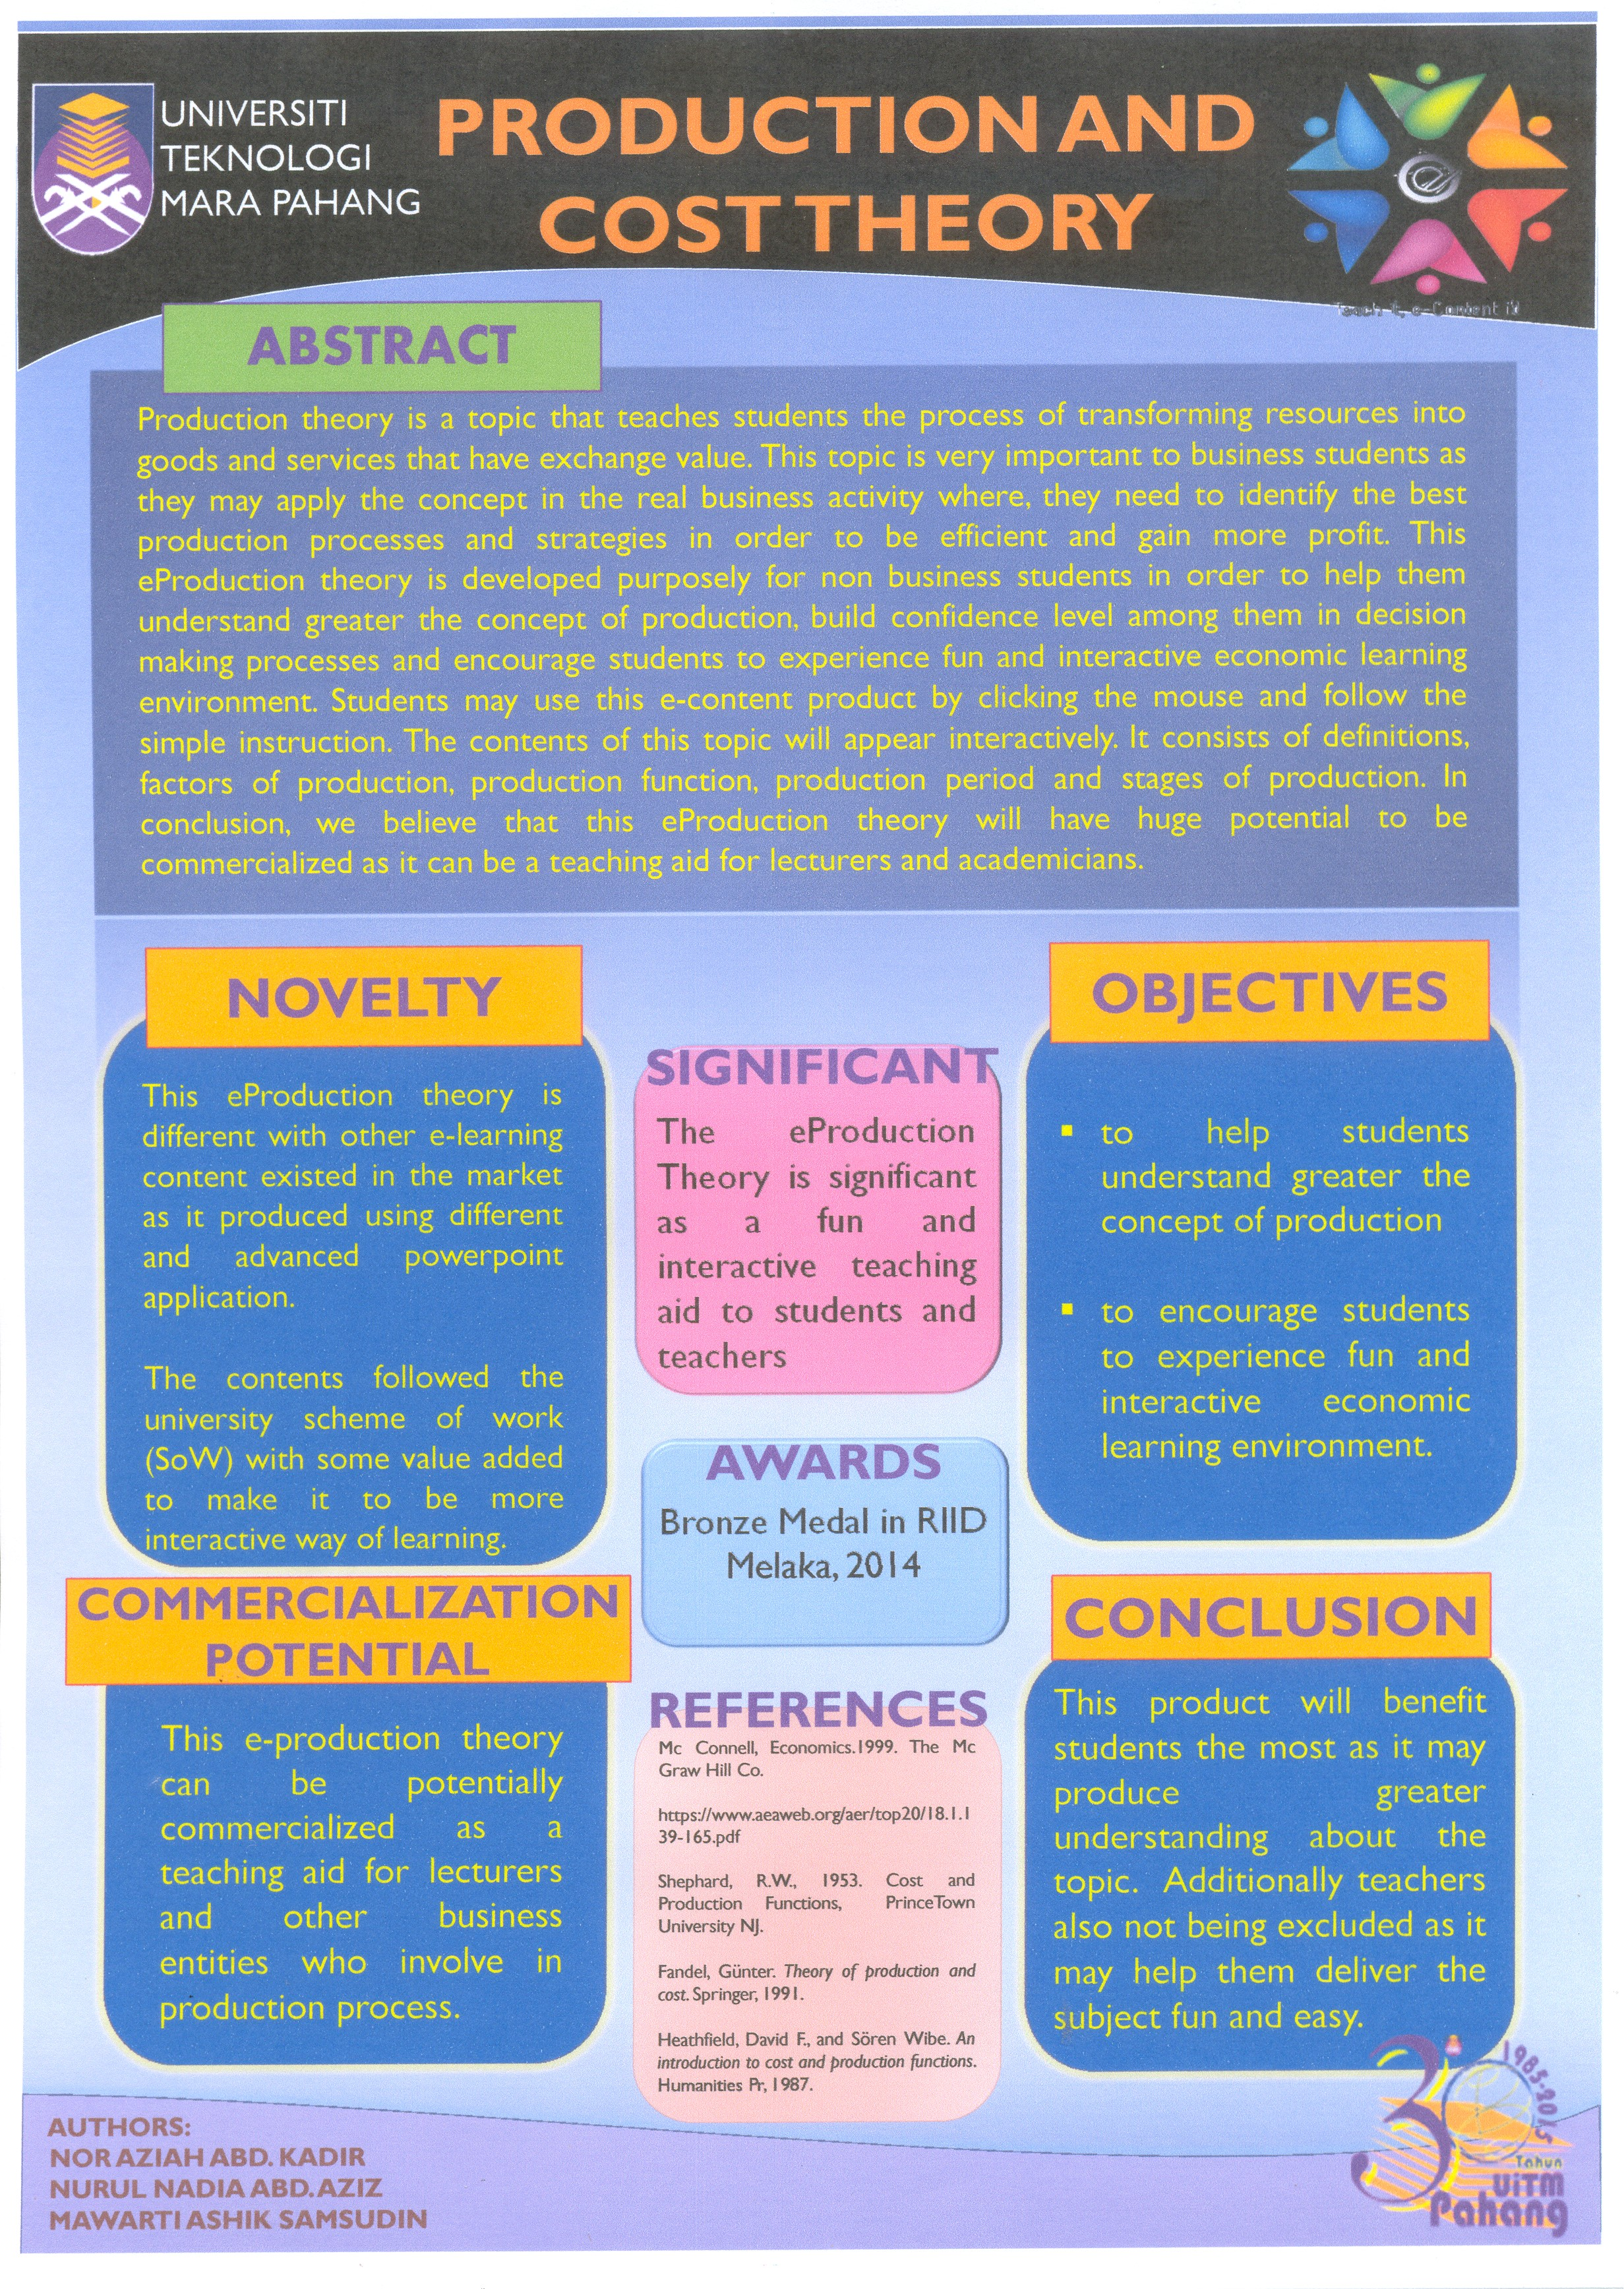 POSTER_E-PRODUCTION THEORY